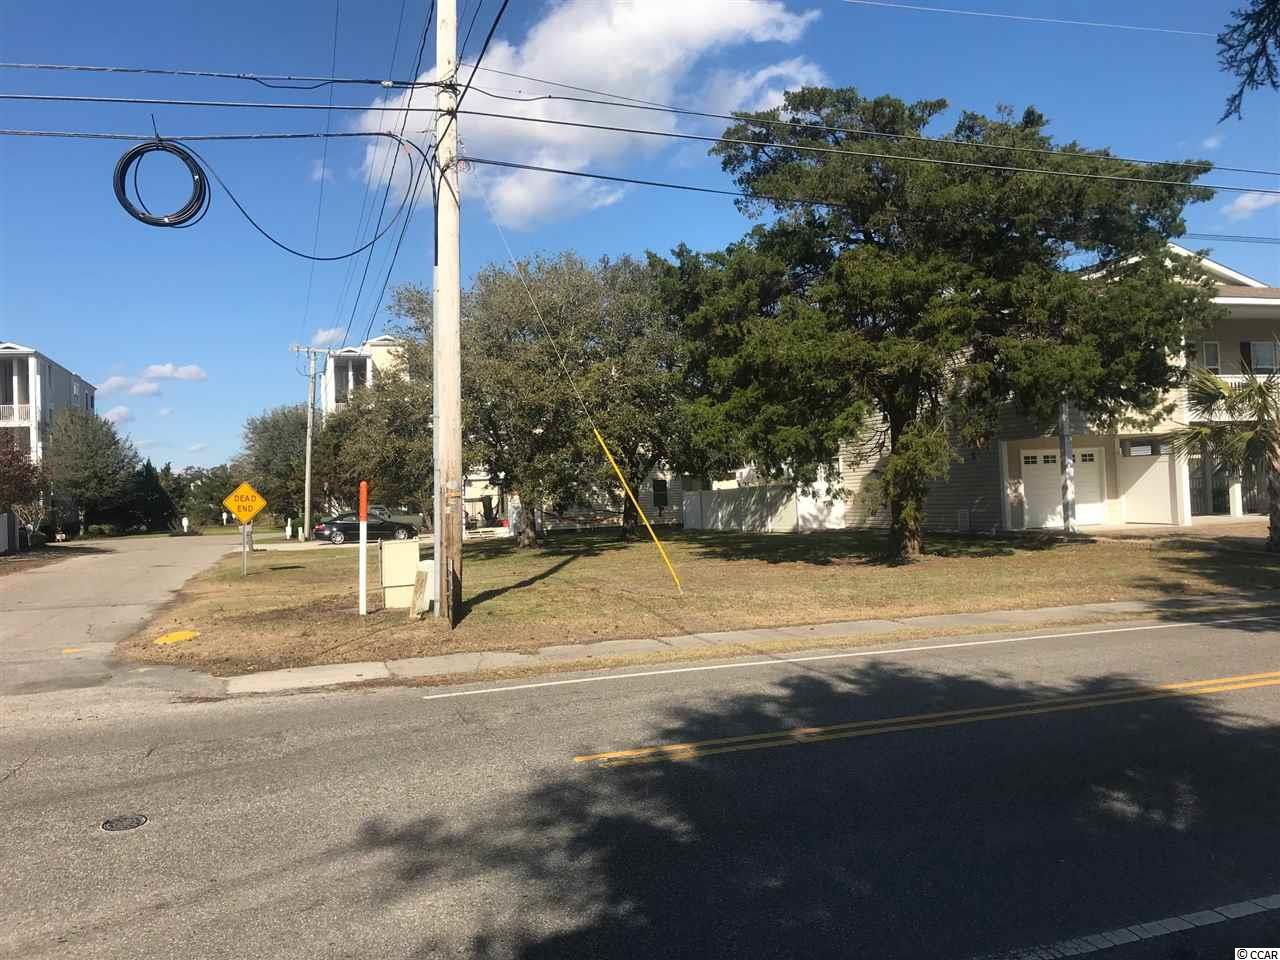 Only 3 blocks to the beach!!  Build your beach house or investment property on this cleared, level, corner  lot that is centrally located in Cherry Grove, with marsh only 100 yards away.  Great location across from Boulineau's, which has everything you will need! Hurry and grab this one up because  they aren't making any more land!